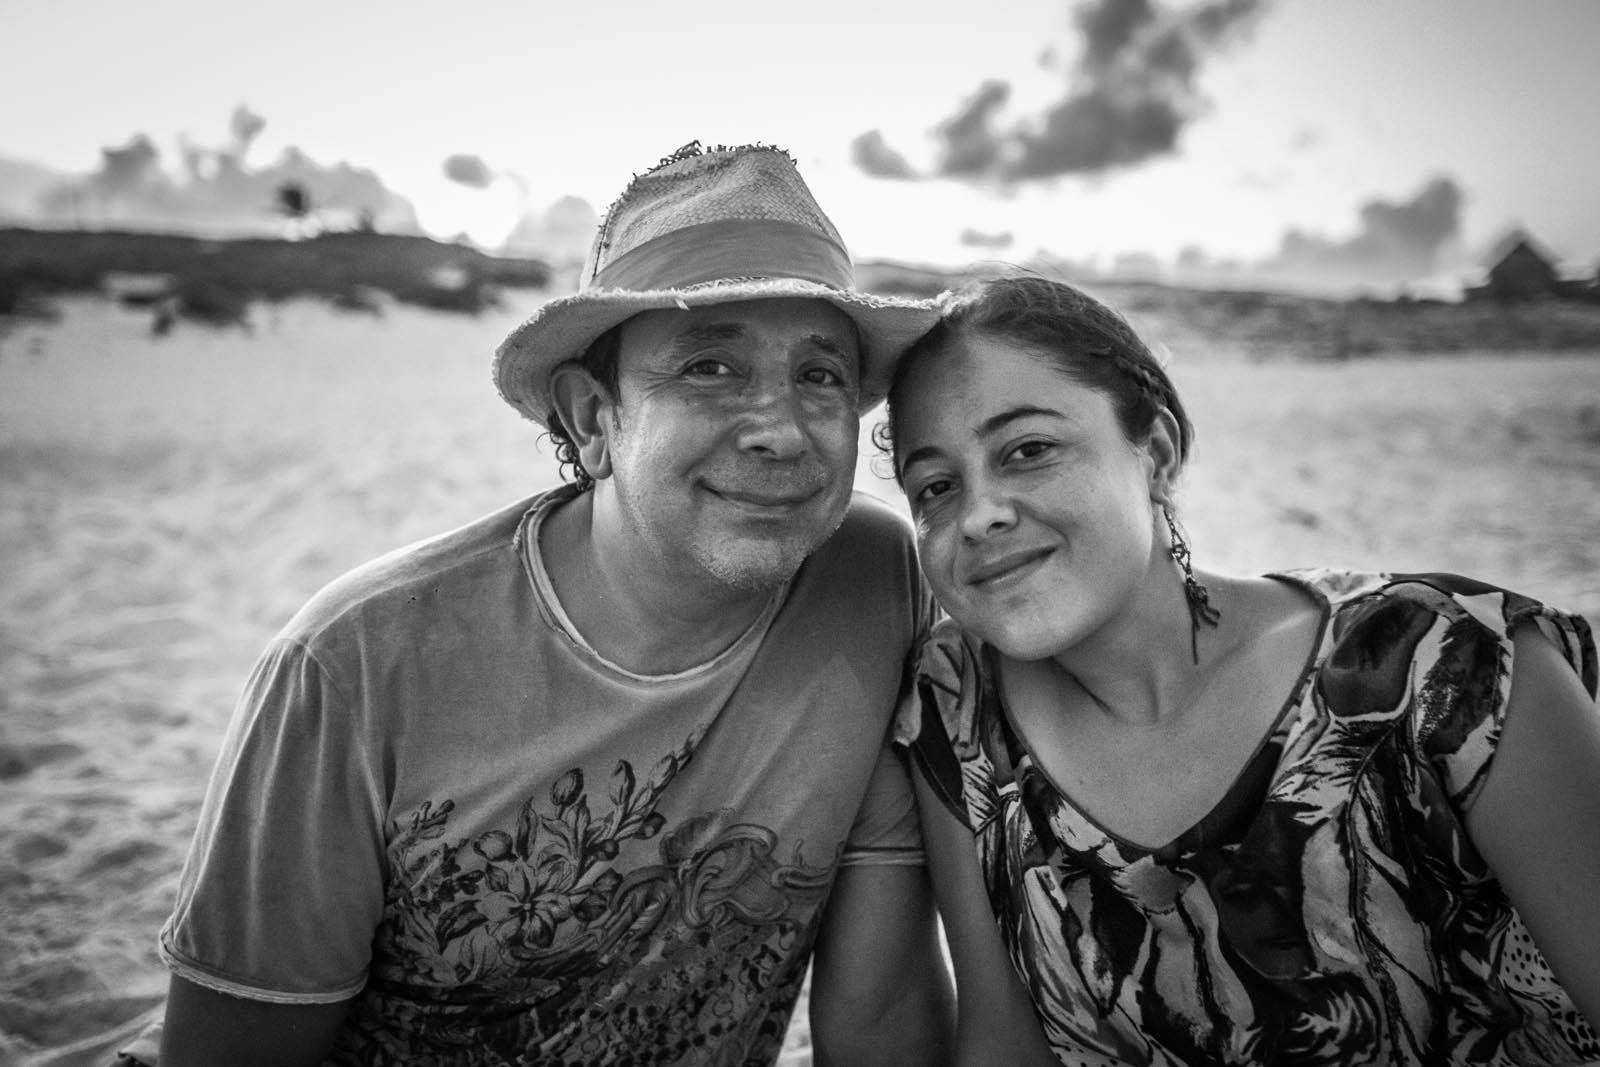 Our new friends, Leon and Marisol, at Playa Delphines, waiting for the full moon to rise.